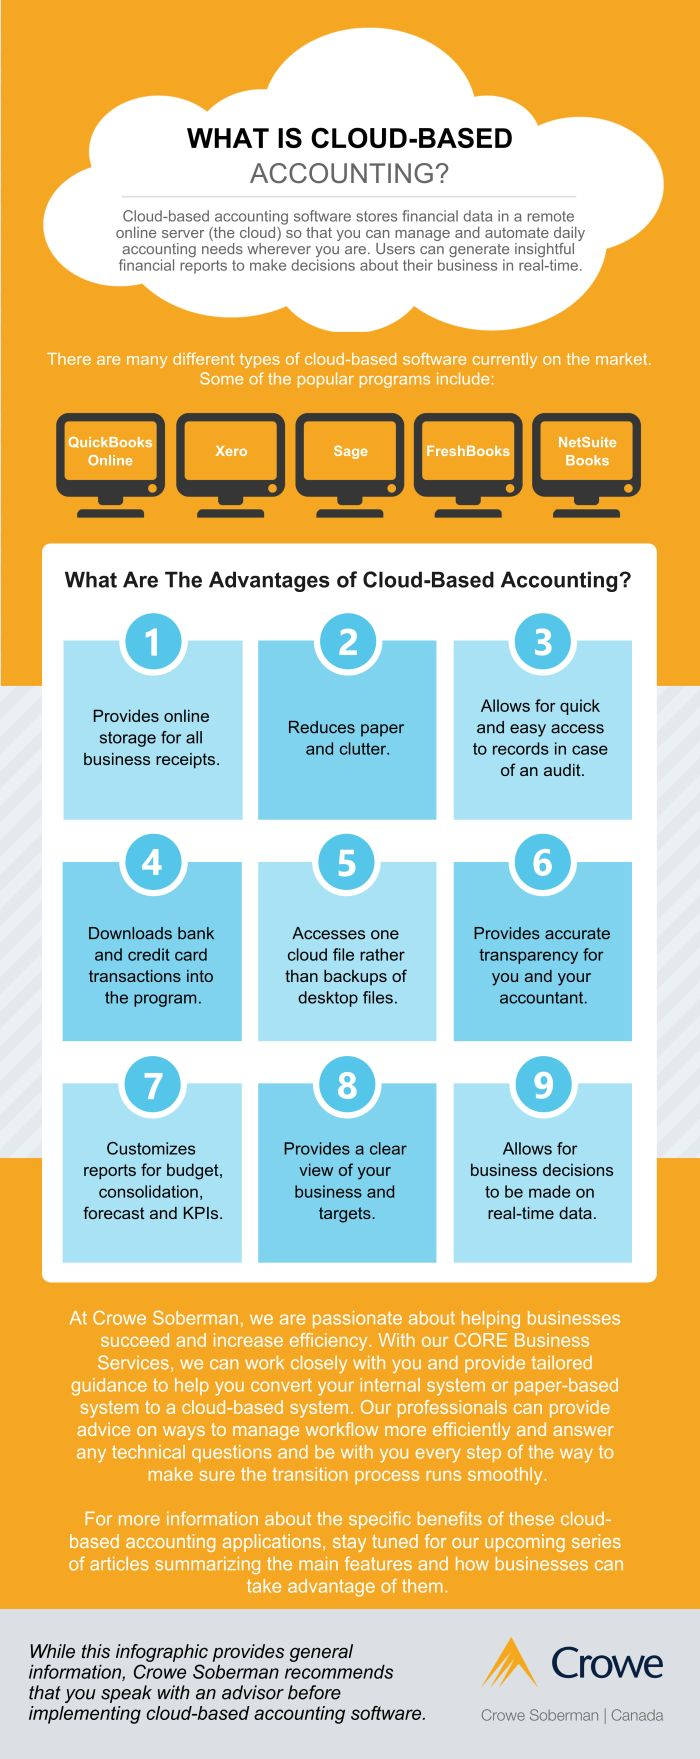 What Is Cloud-Based Accounting? - Accounting and Audit - Canada